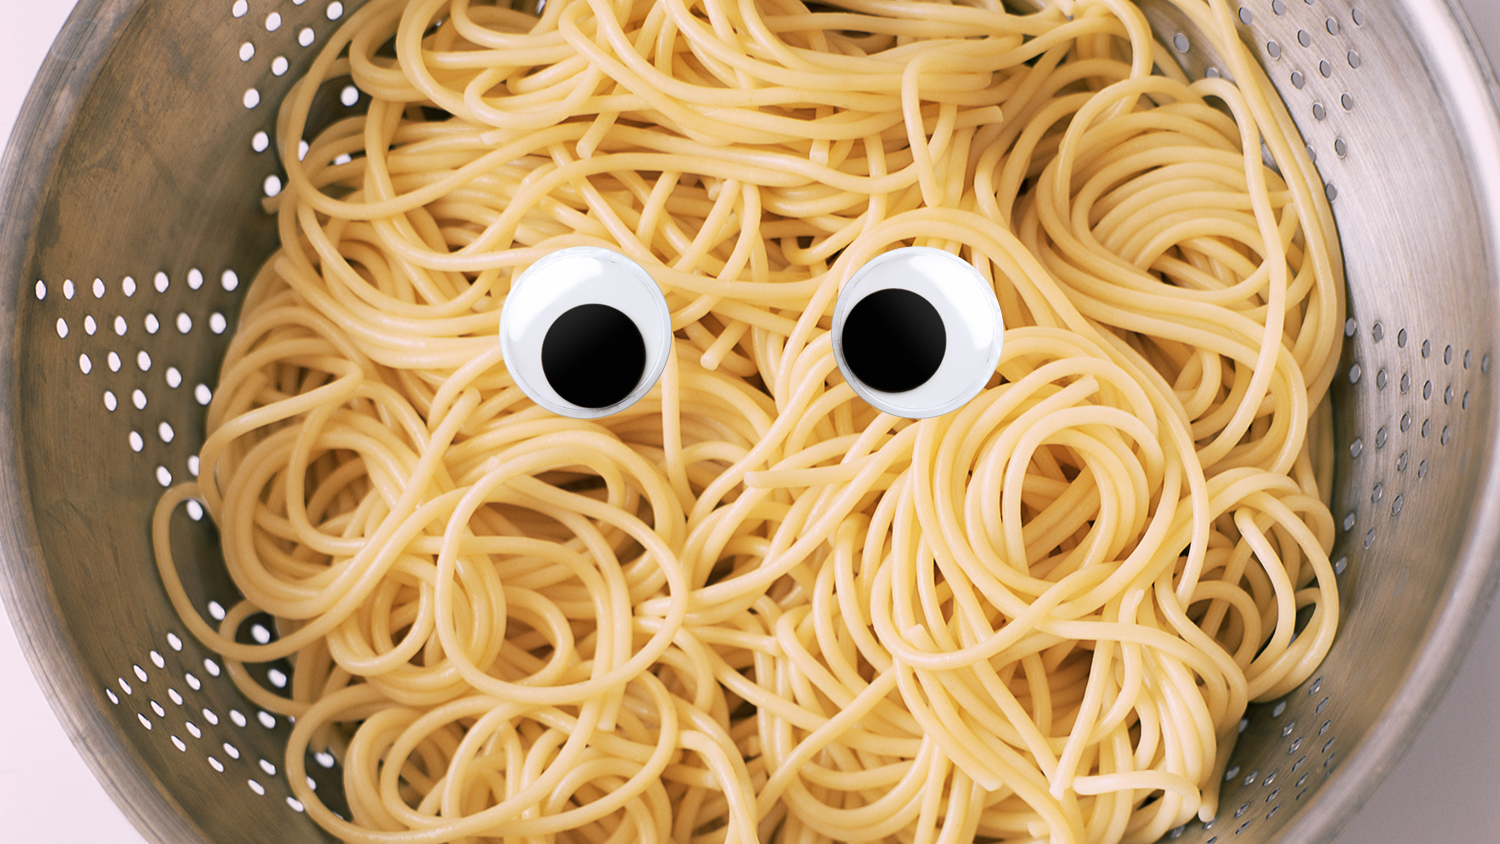 Twitter Freaks Out Over Learning the Singular of Spaghetti Is ...